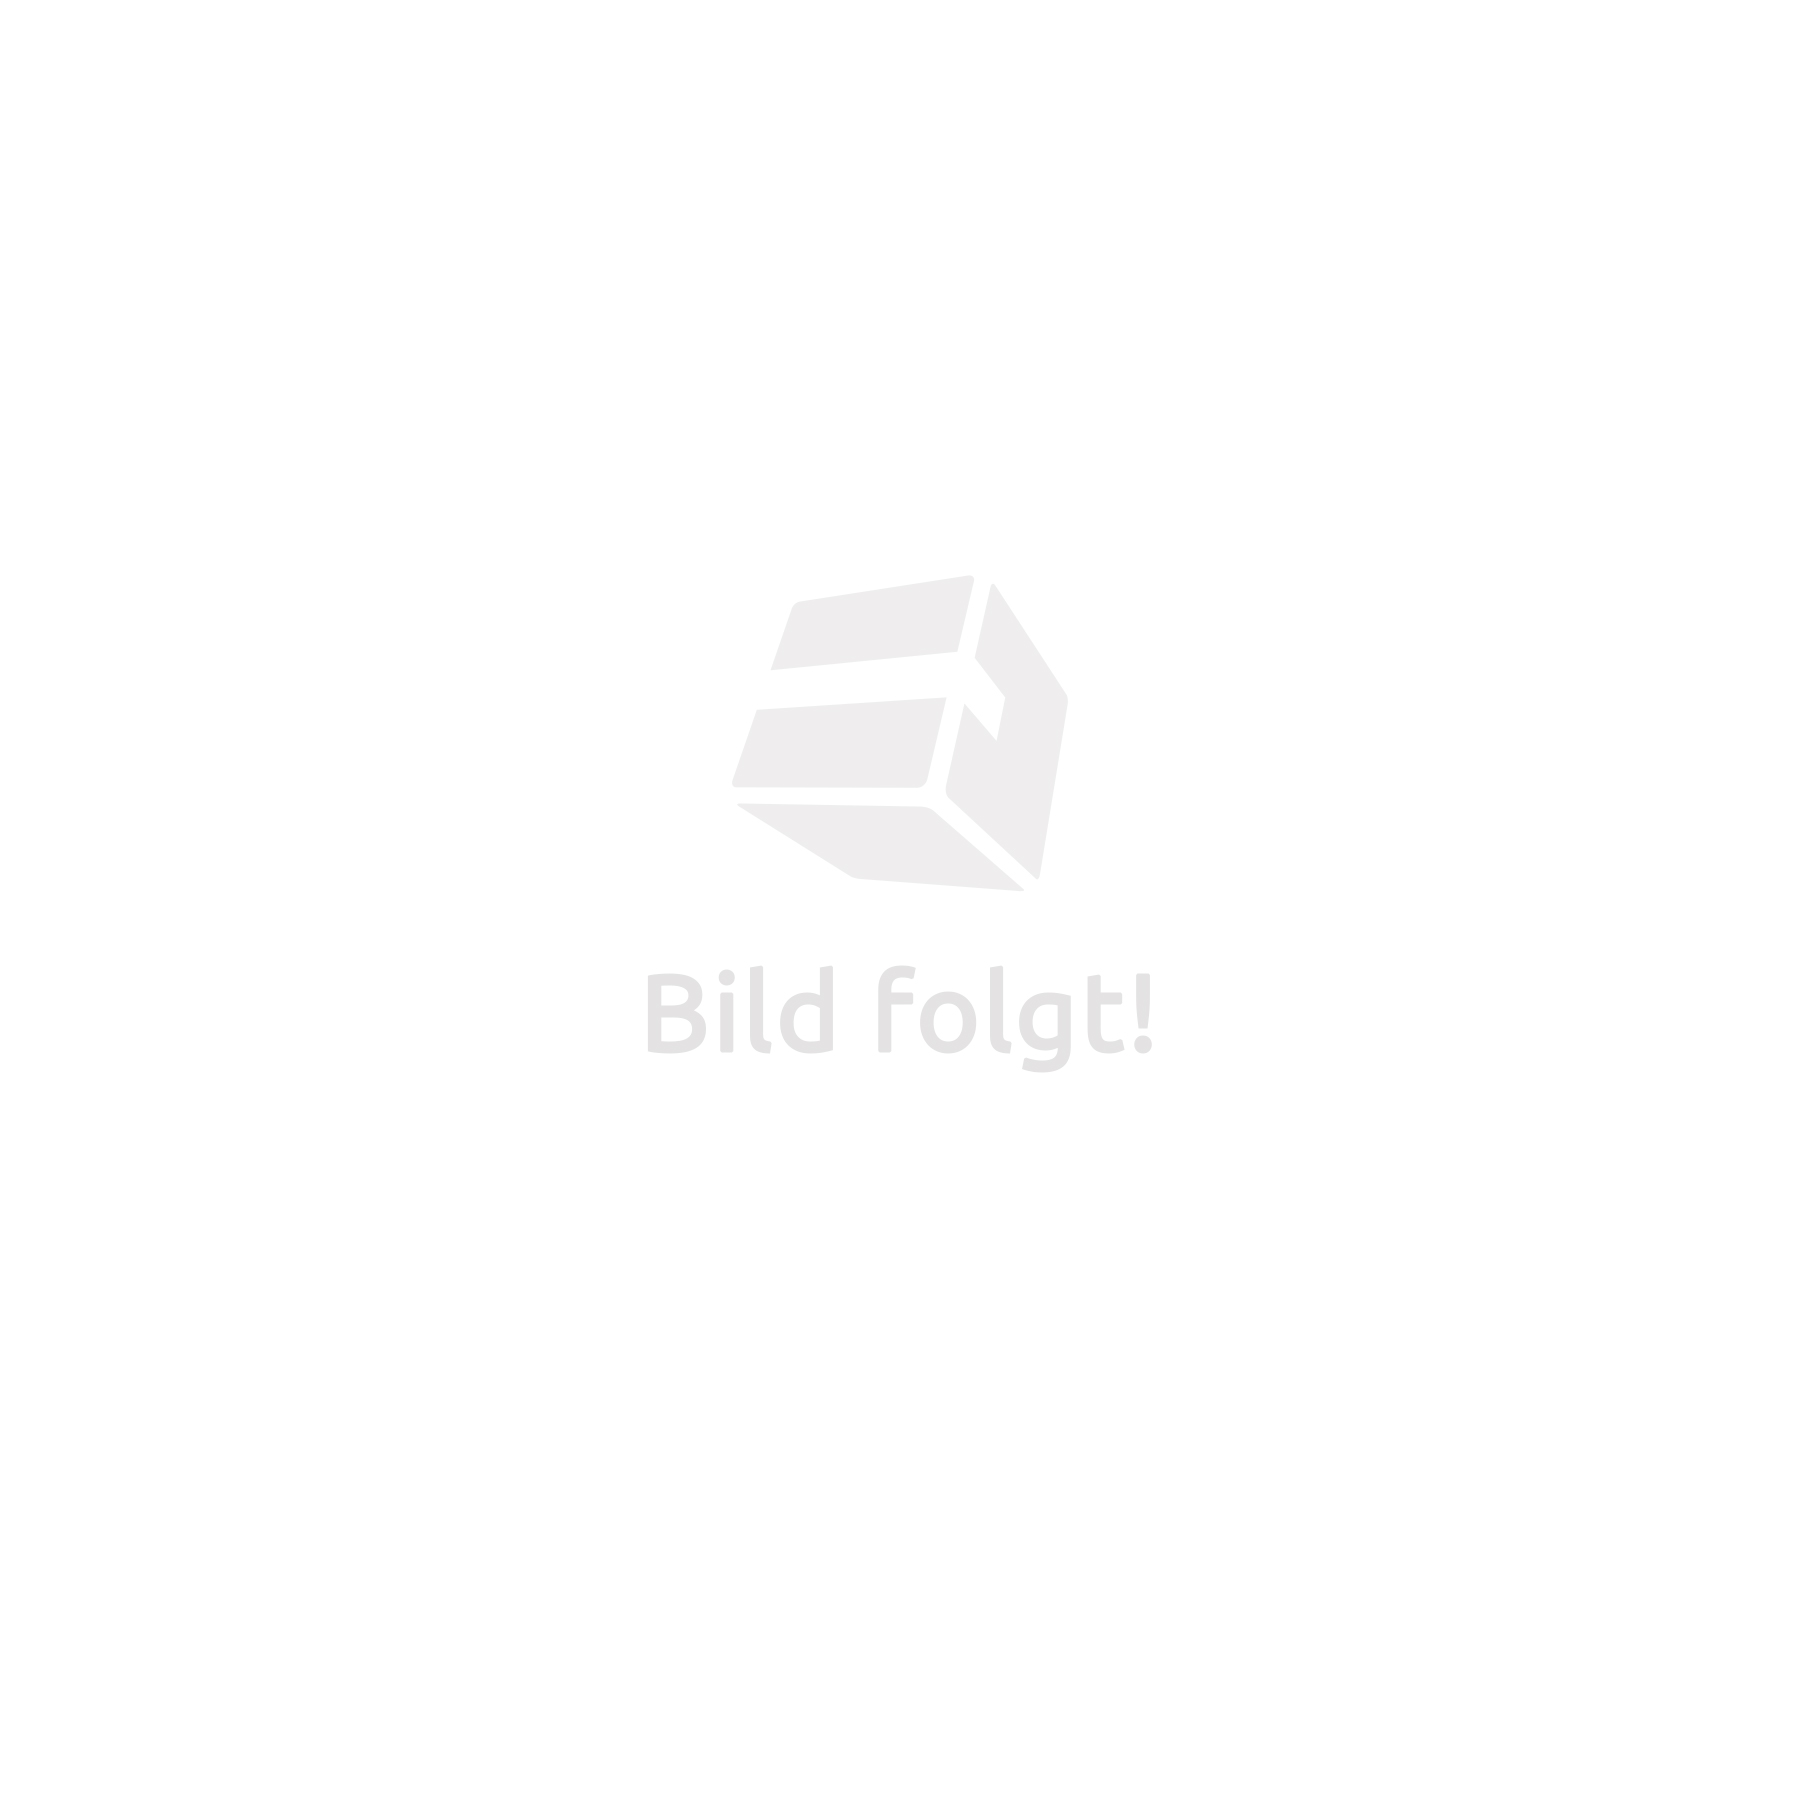 Rollcontainer aus Holz rosa